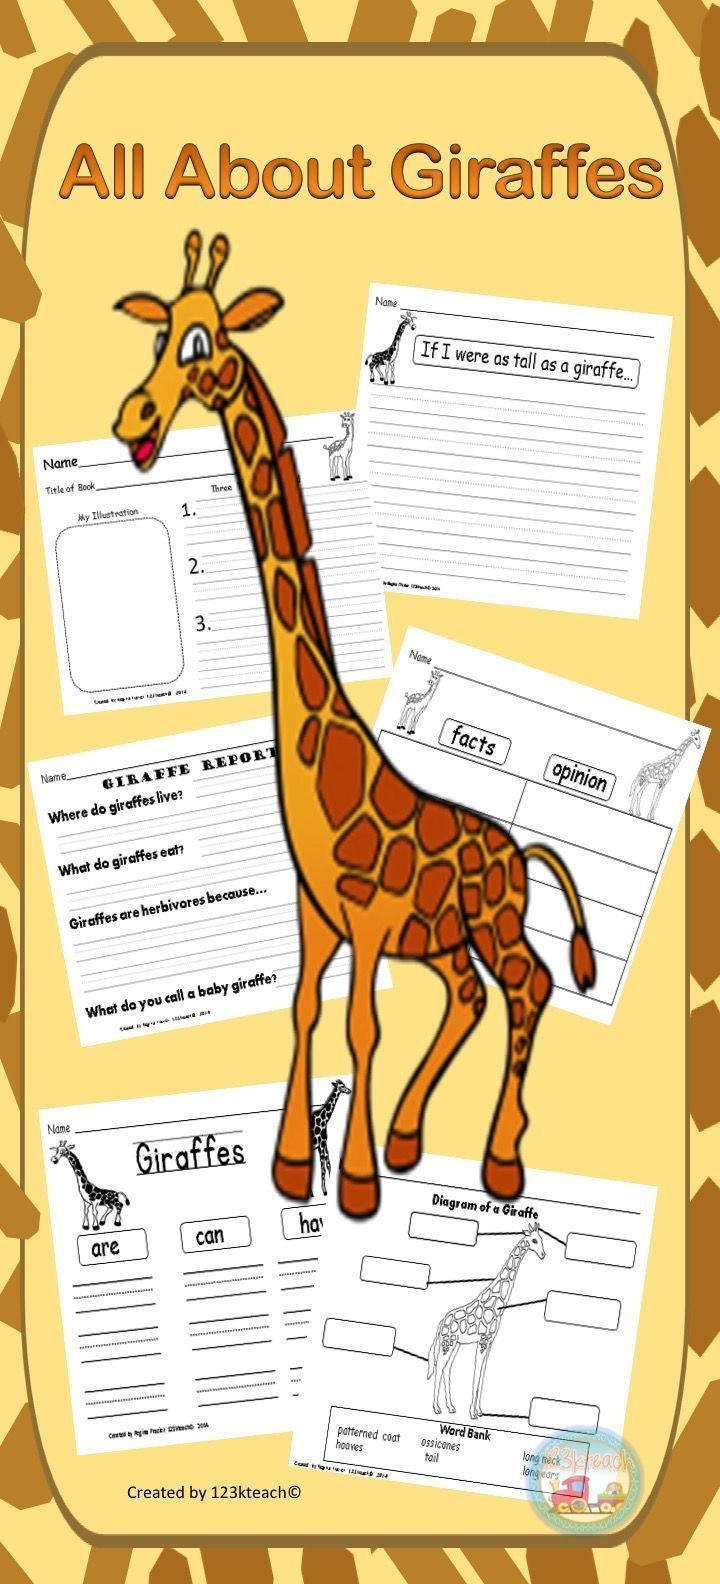 4334 best classroom ideas images on pinterest teaching ideas giraffes writing prompts graphic organizers diagram pooptronica Image collections